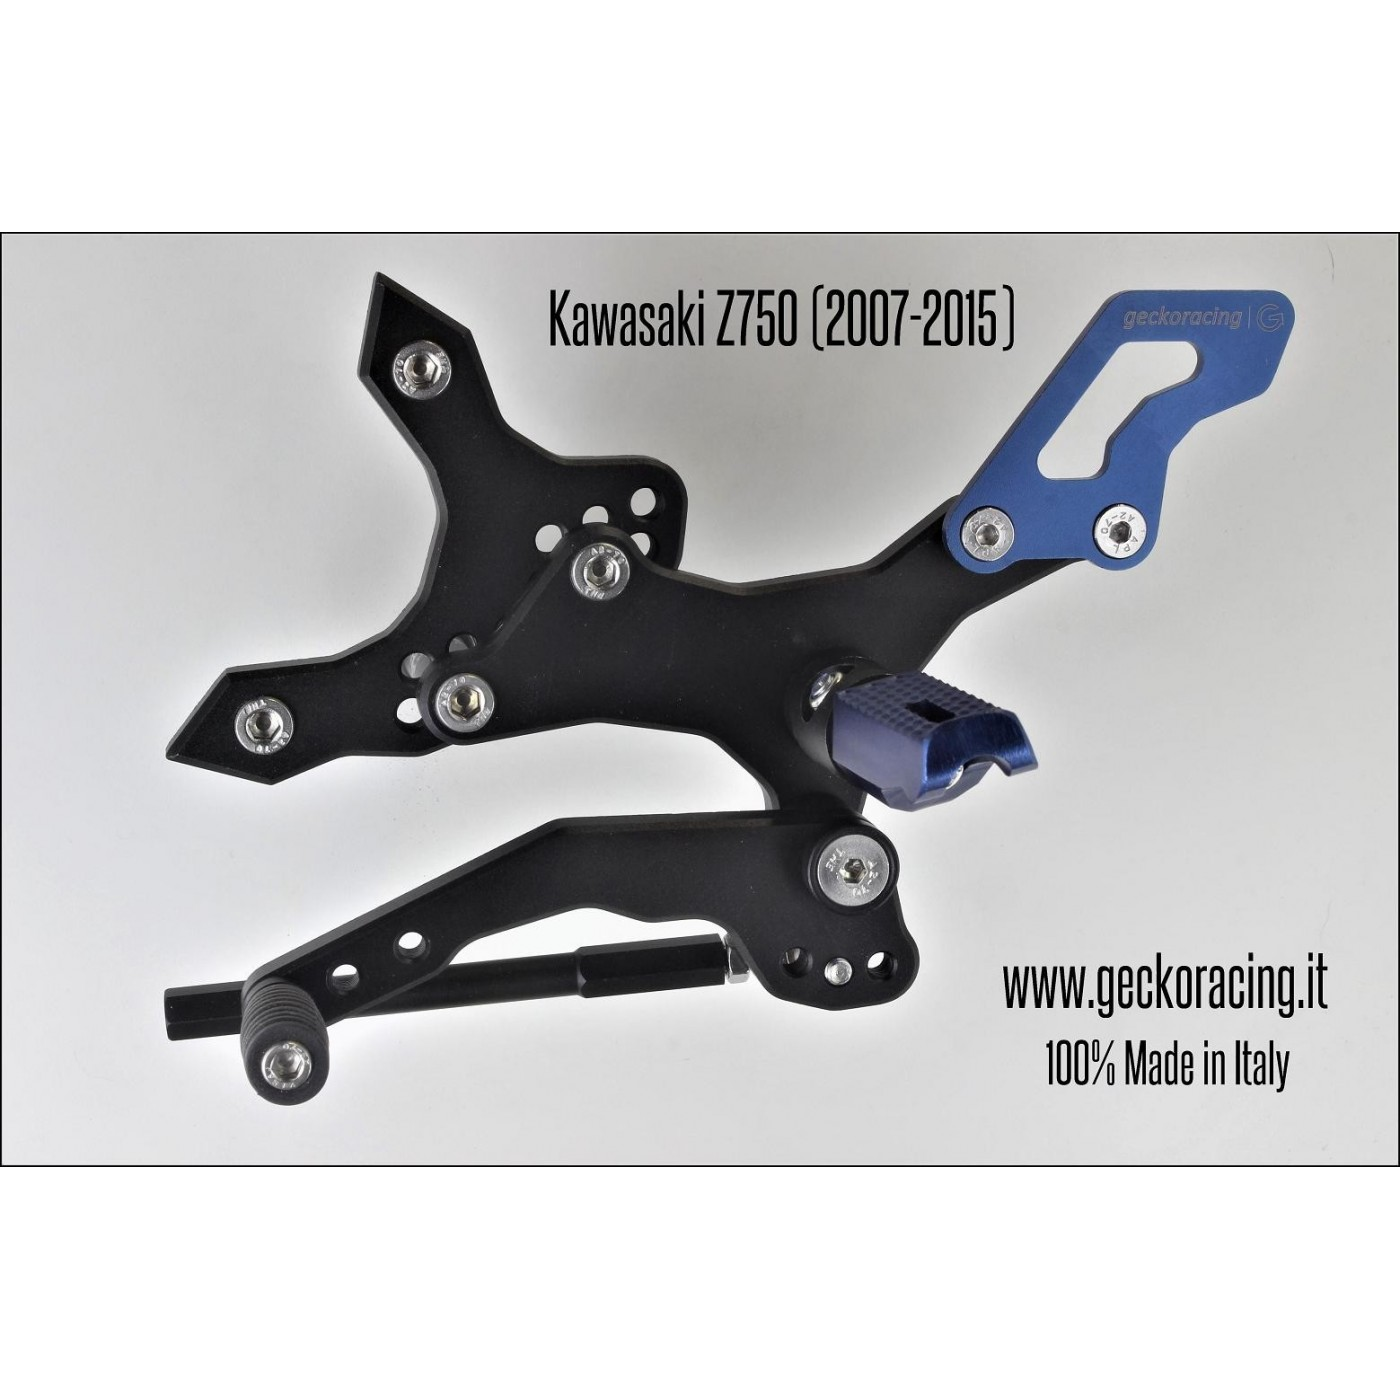 Rearsets Adjustable Kawasaki Z750 Gear